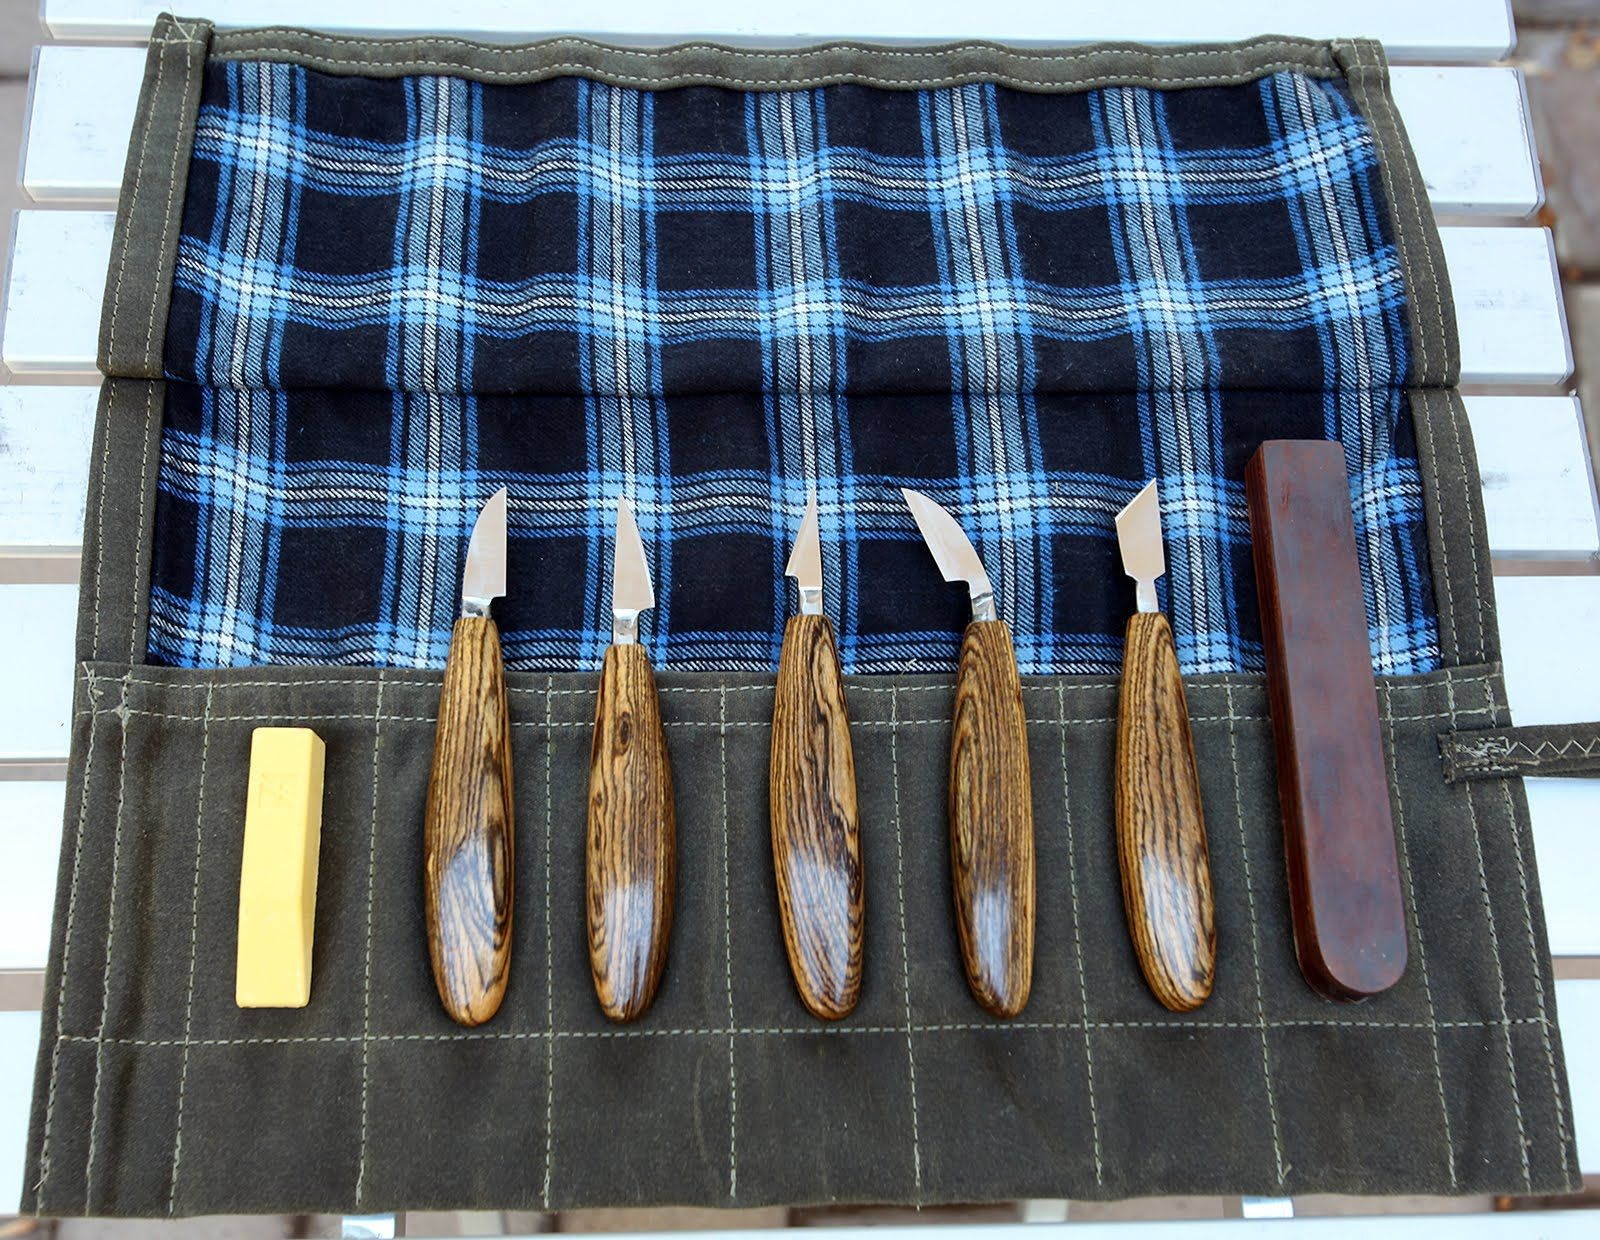 Forged wood carving knives part of intro wood stabilization